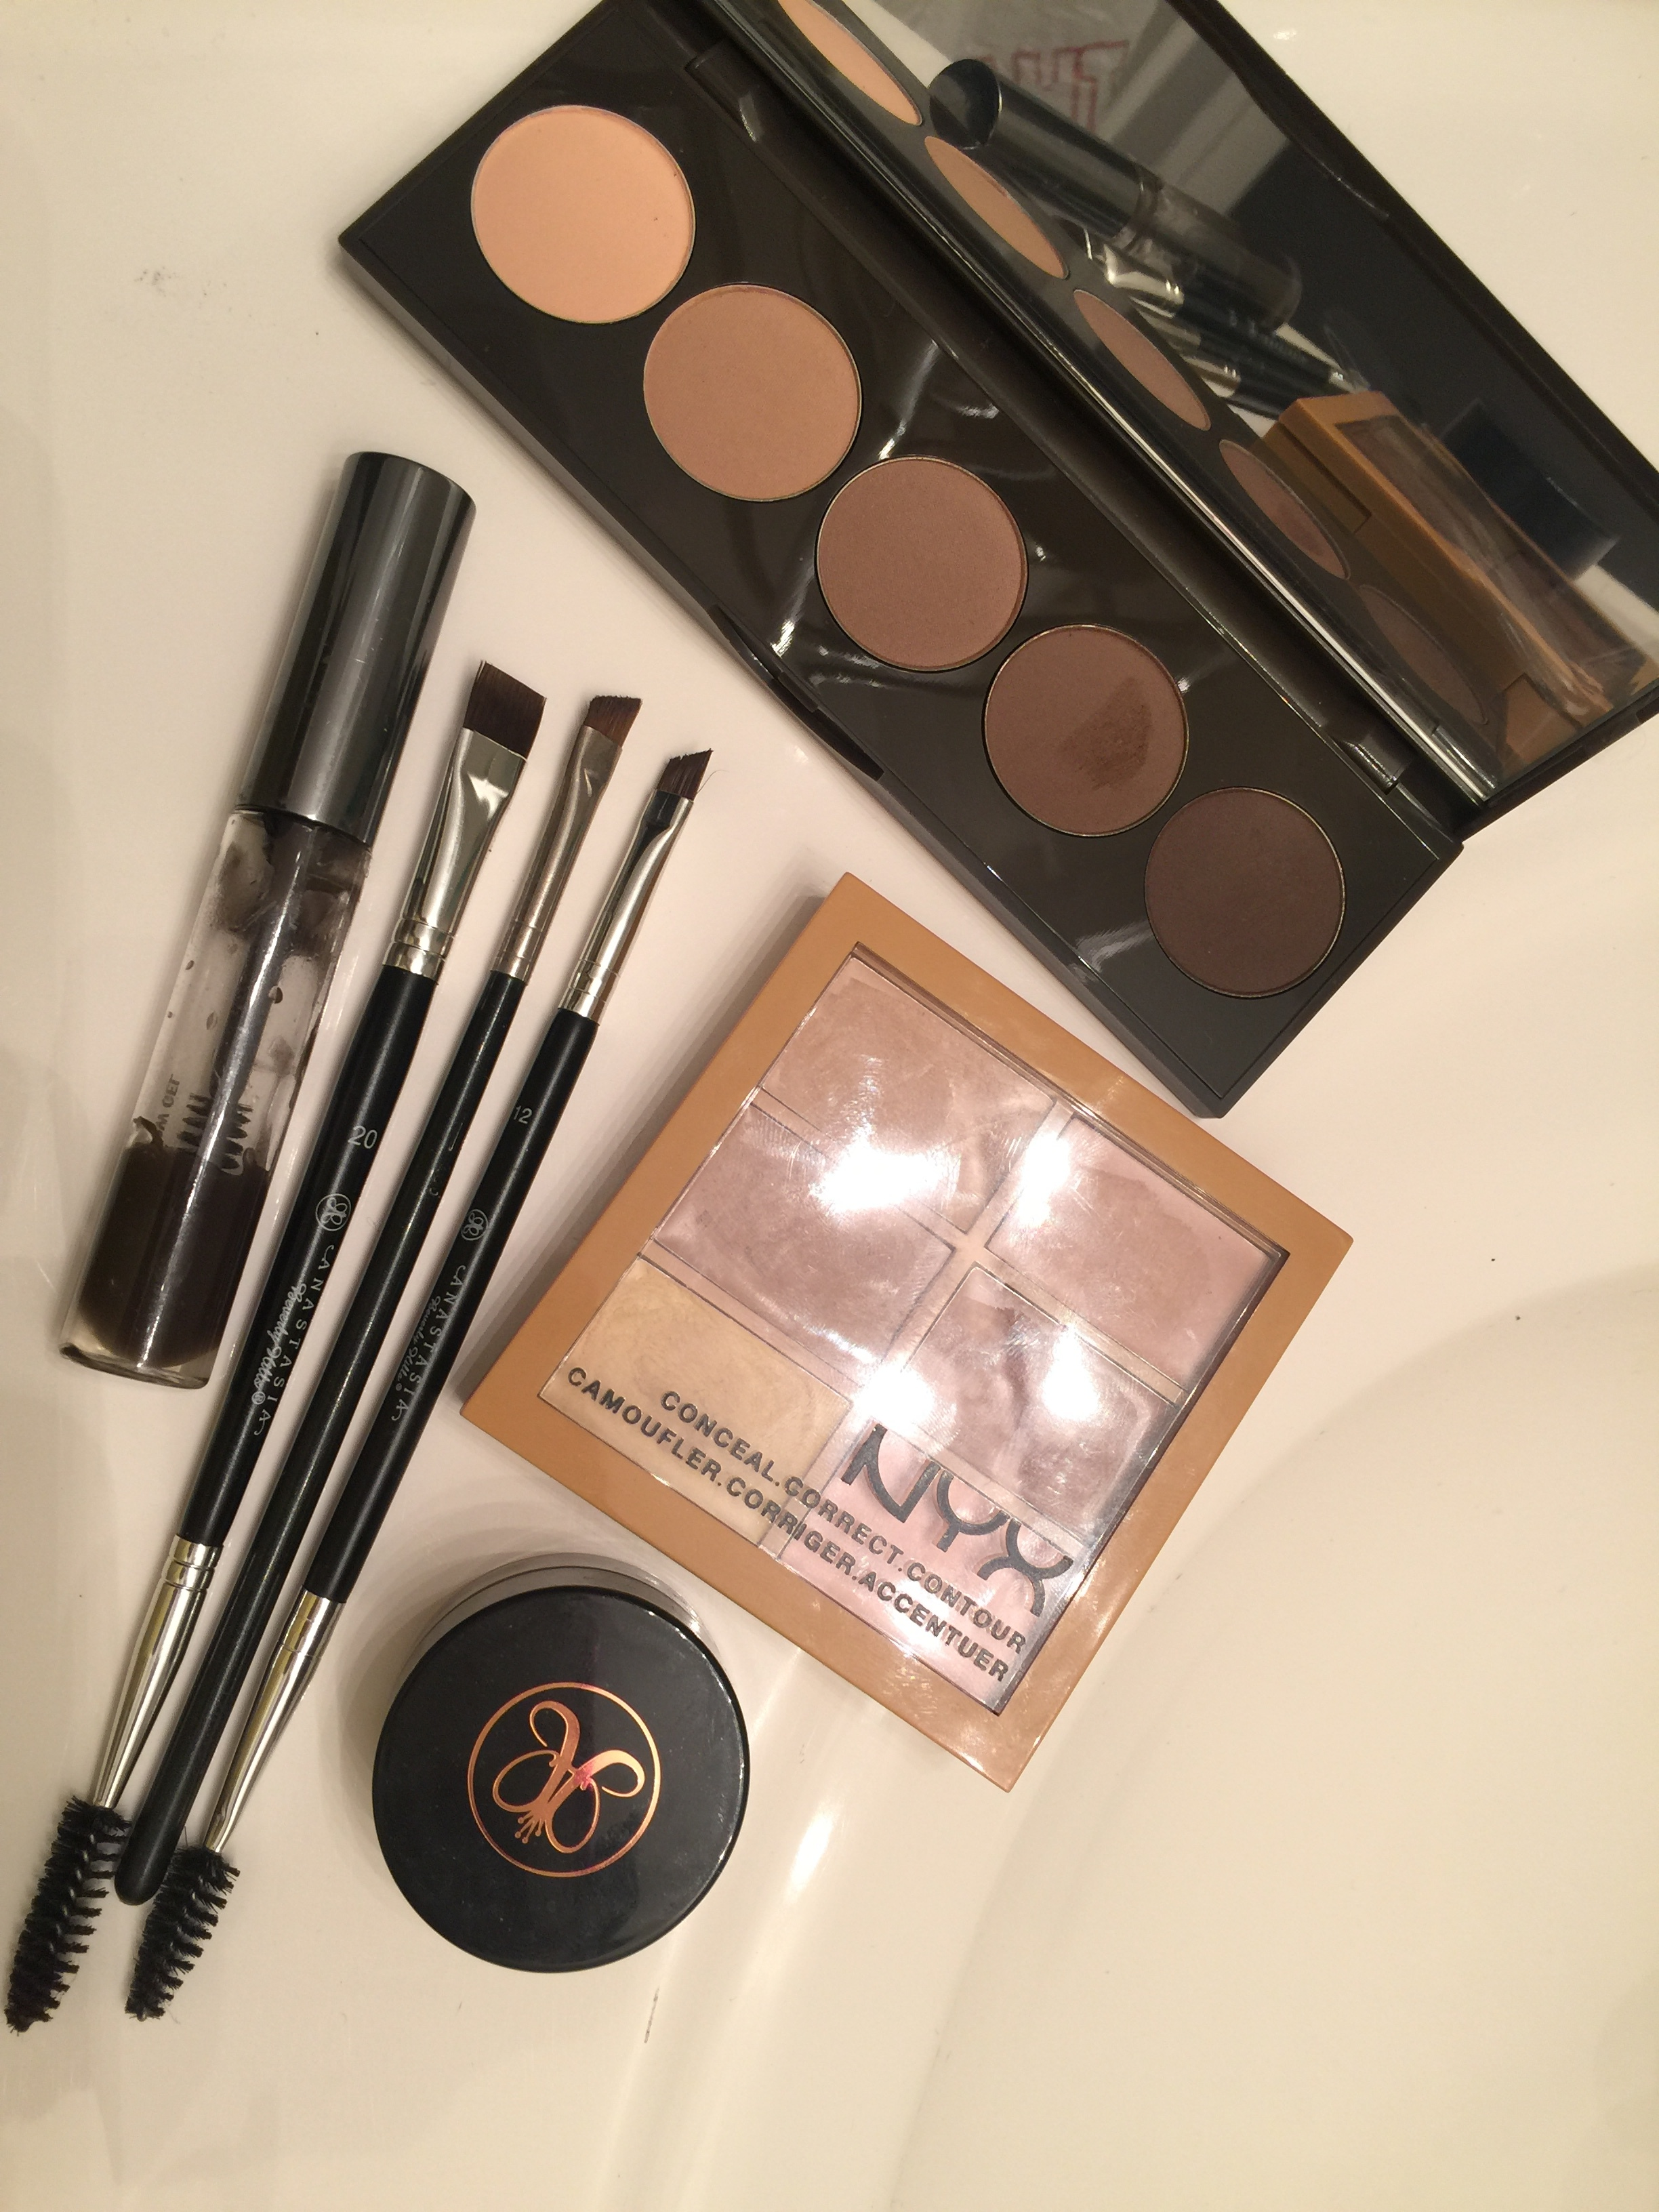 JayChantelle's daily eyebrow products.